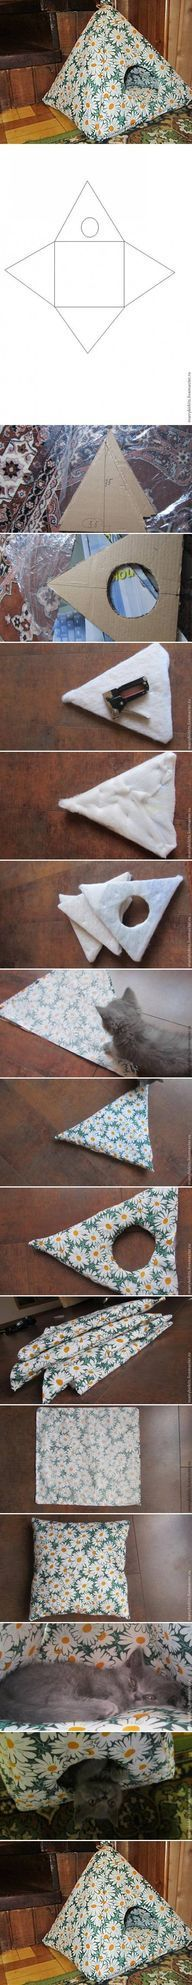 DIY Cat Tent DIY House for Cat or small dog or make it small enough for any of your pet rodents. Love rats and all!DIY House for Cat or small dog or make it small enough for any of your pet rodents. Love rats and all! Diy Cat Tent, Diy Tent, Cat Teepee, Teepee Bed, Pet Rodents, Chinchillas, Cat House Diy, Kitty House, Ideal Toys